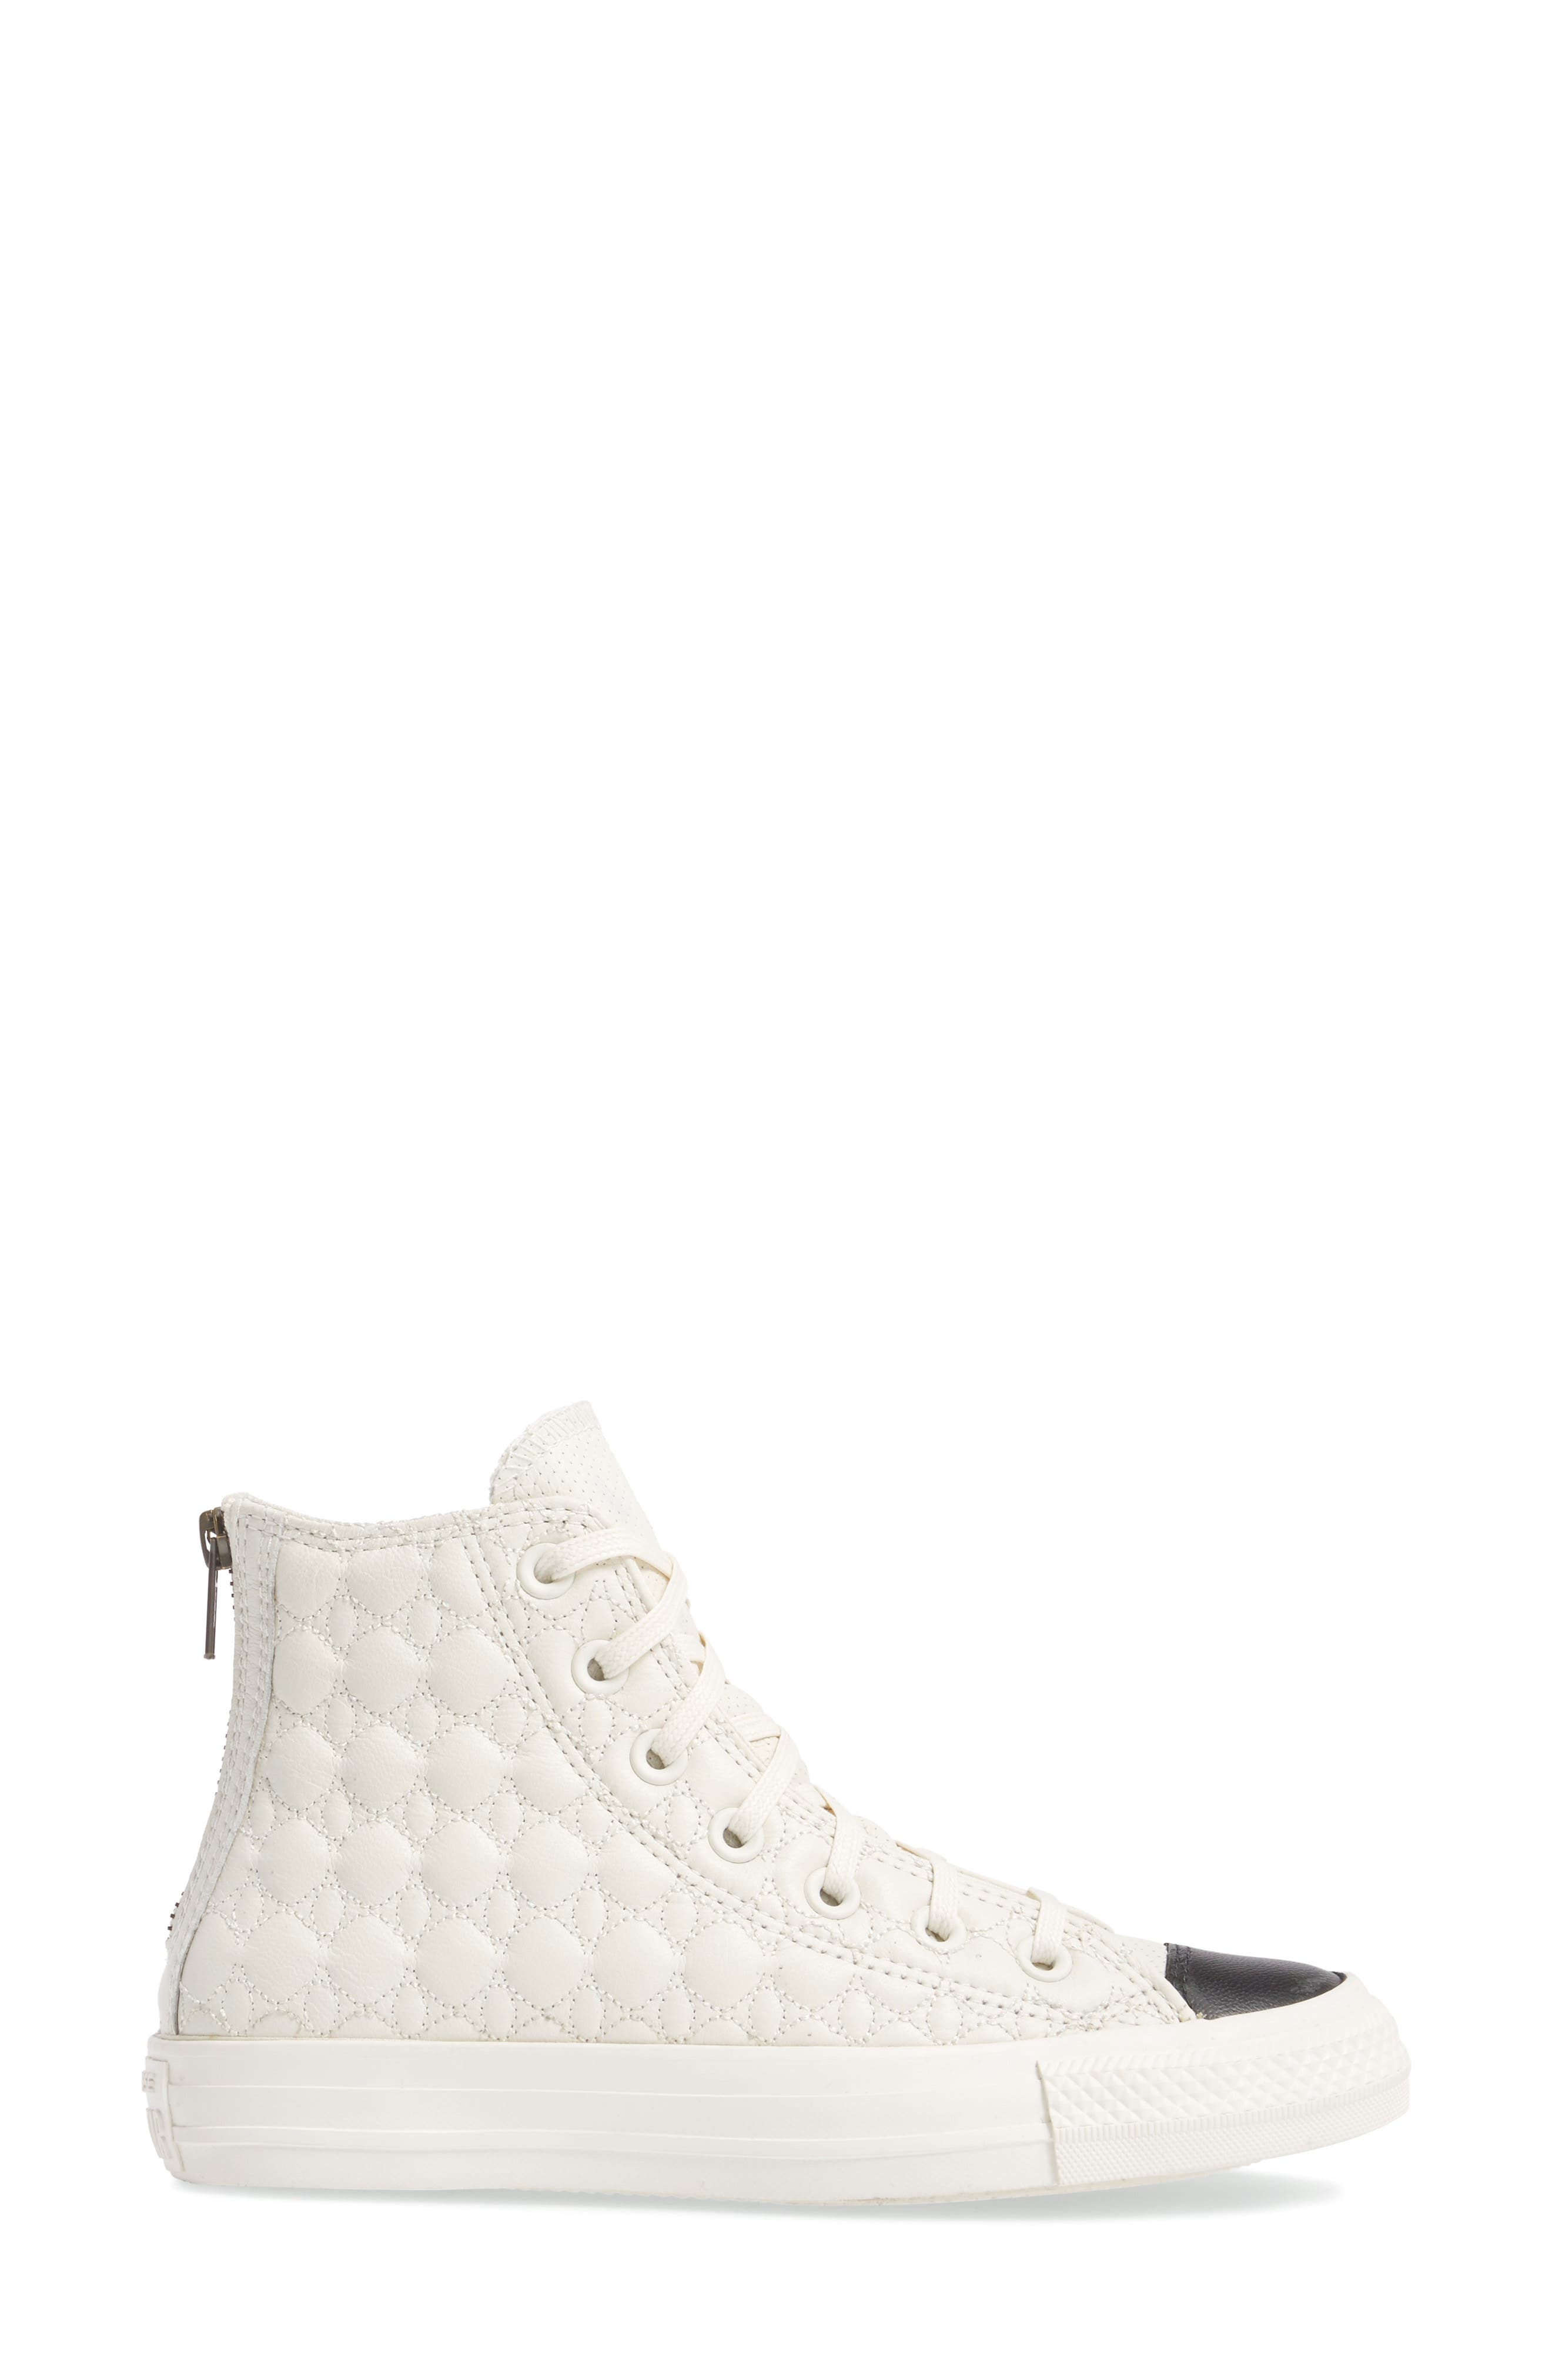 All Star<sup>®</sup> Quilted High Top Sneaker,                             Alternate thumbnail 3, color,                             Egret Leather